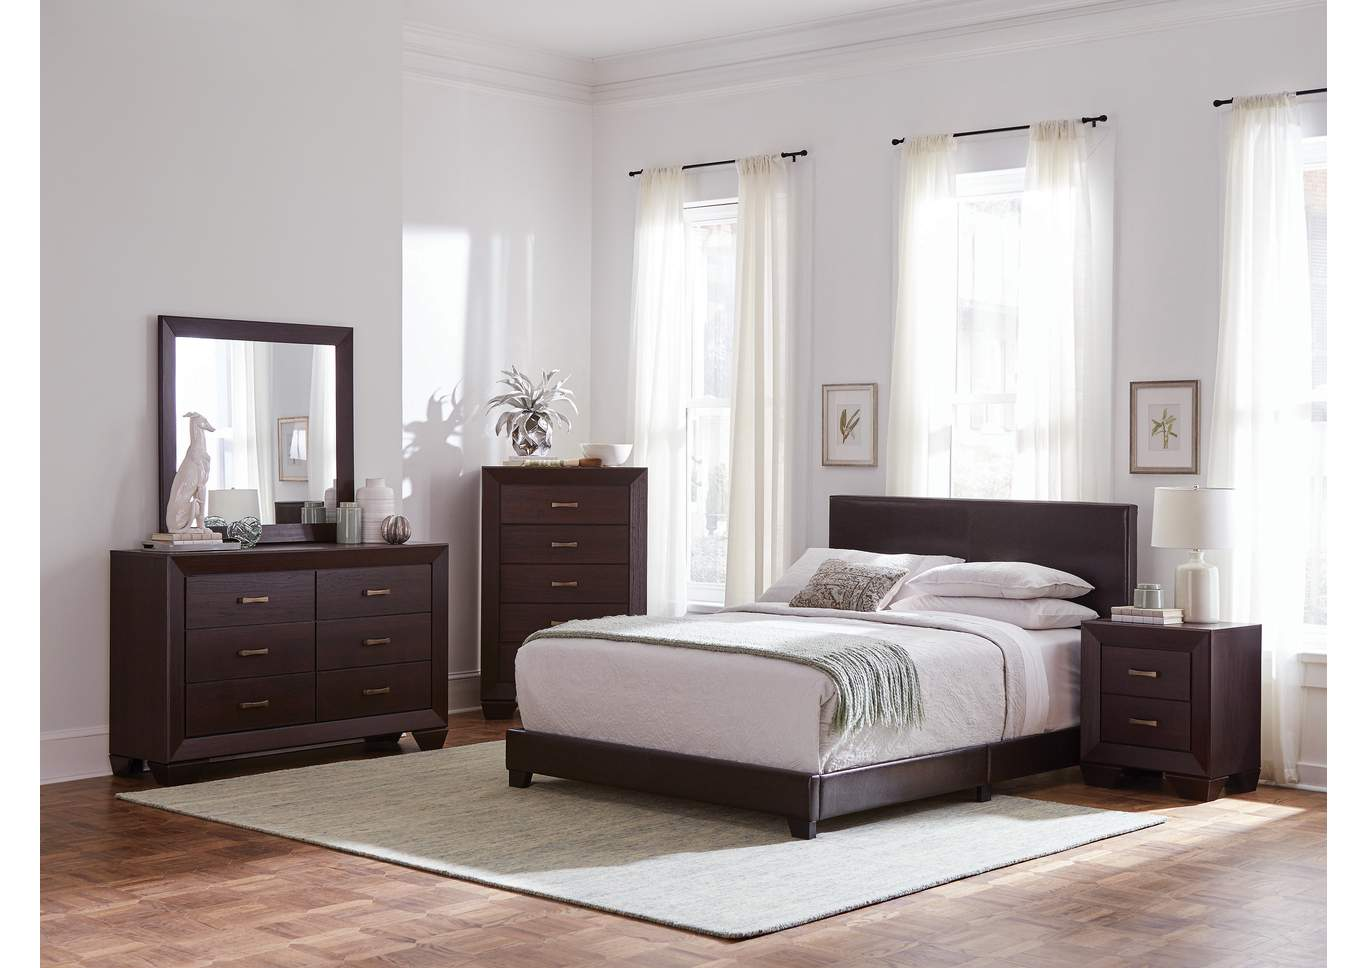 Dorian Brown & Dark Cocoa Panel California King 4 Piece Bedroom Set,Coaster Furniture